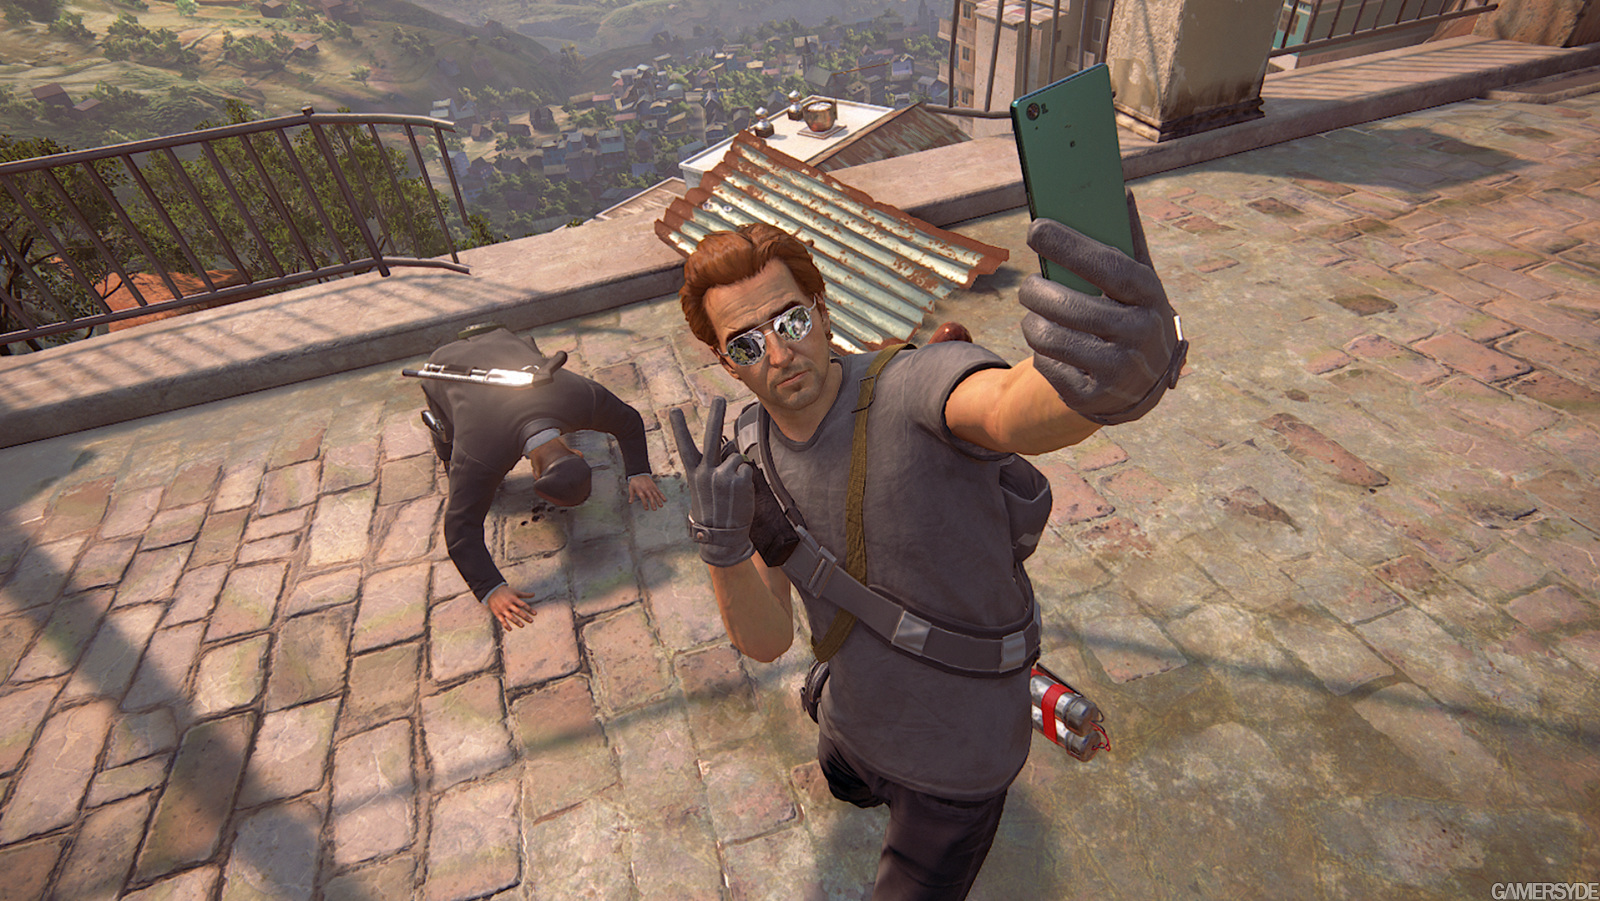 image_uncharted_4_a_thief_s_end-30383-29